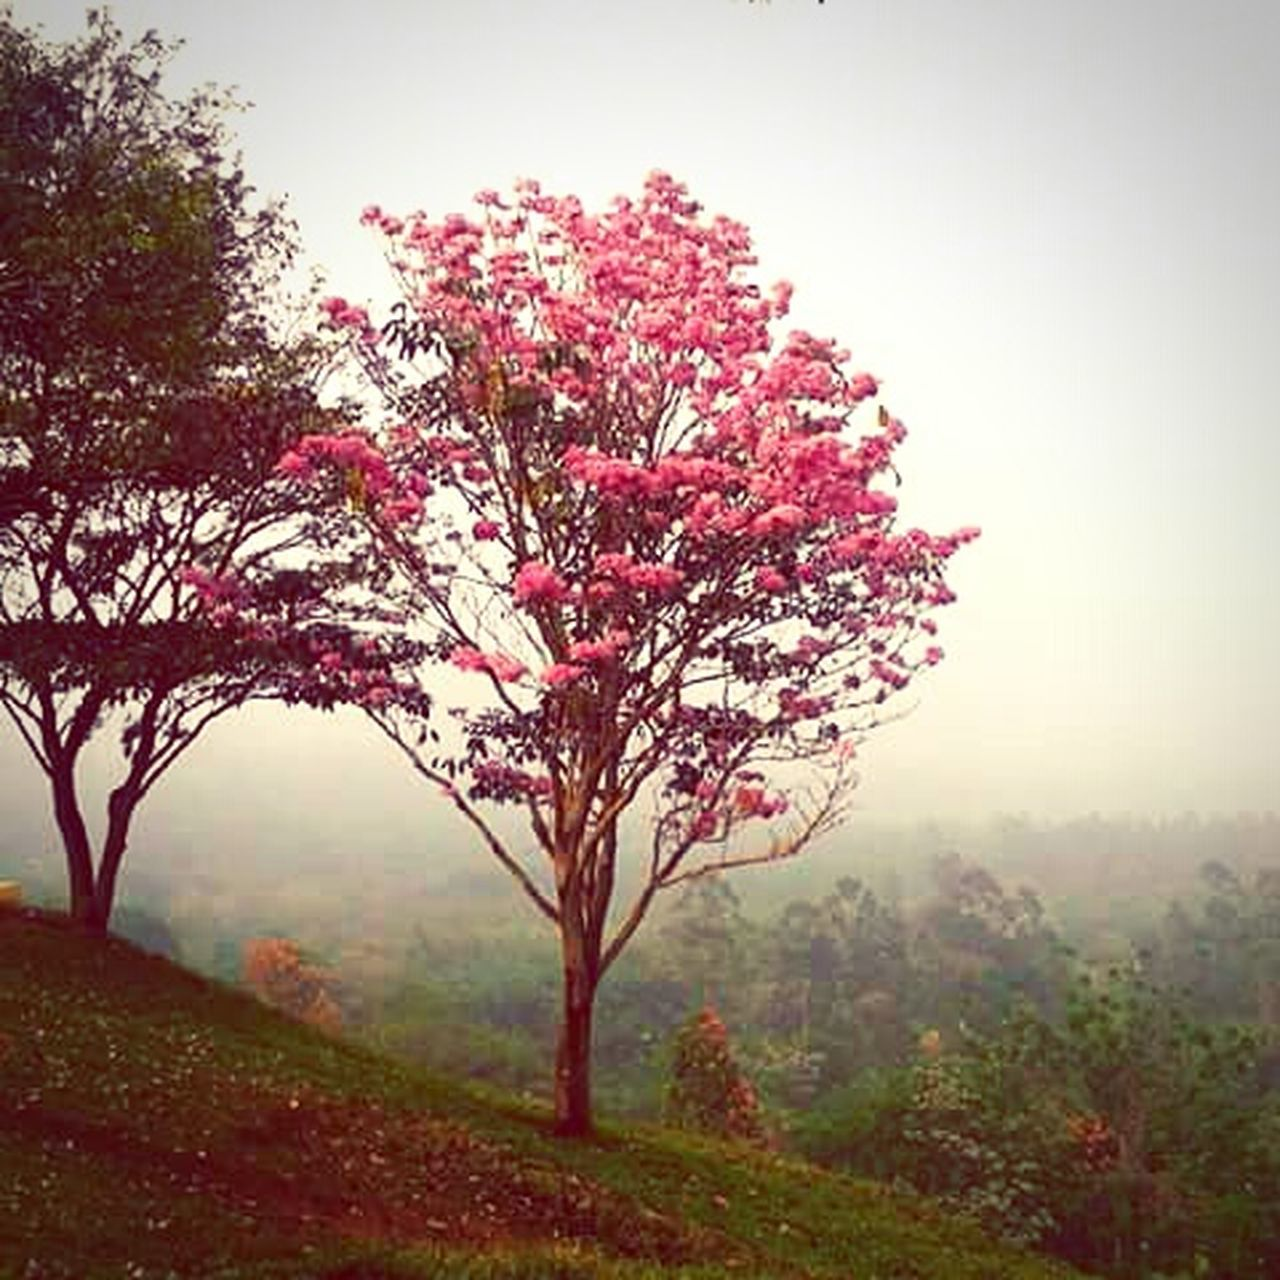 tree, nature, beauty in nature, landscape, fog, outdoors, autumn, scenics, growth, no people, tranquility, field, plant, flower, branch, day, red, freshness, leaf, dawn, sky, grass